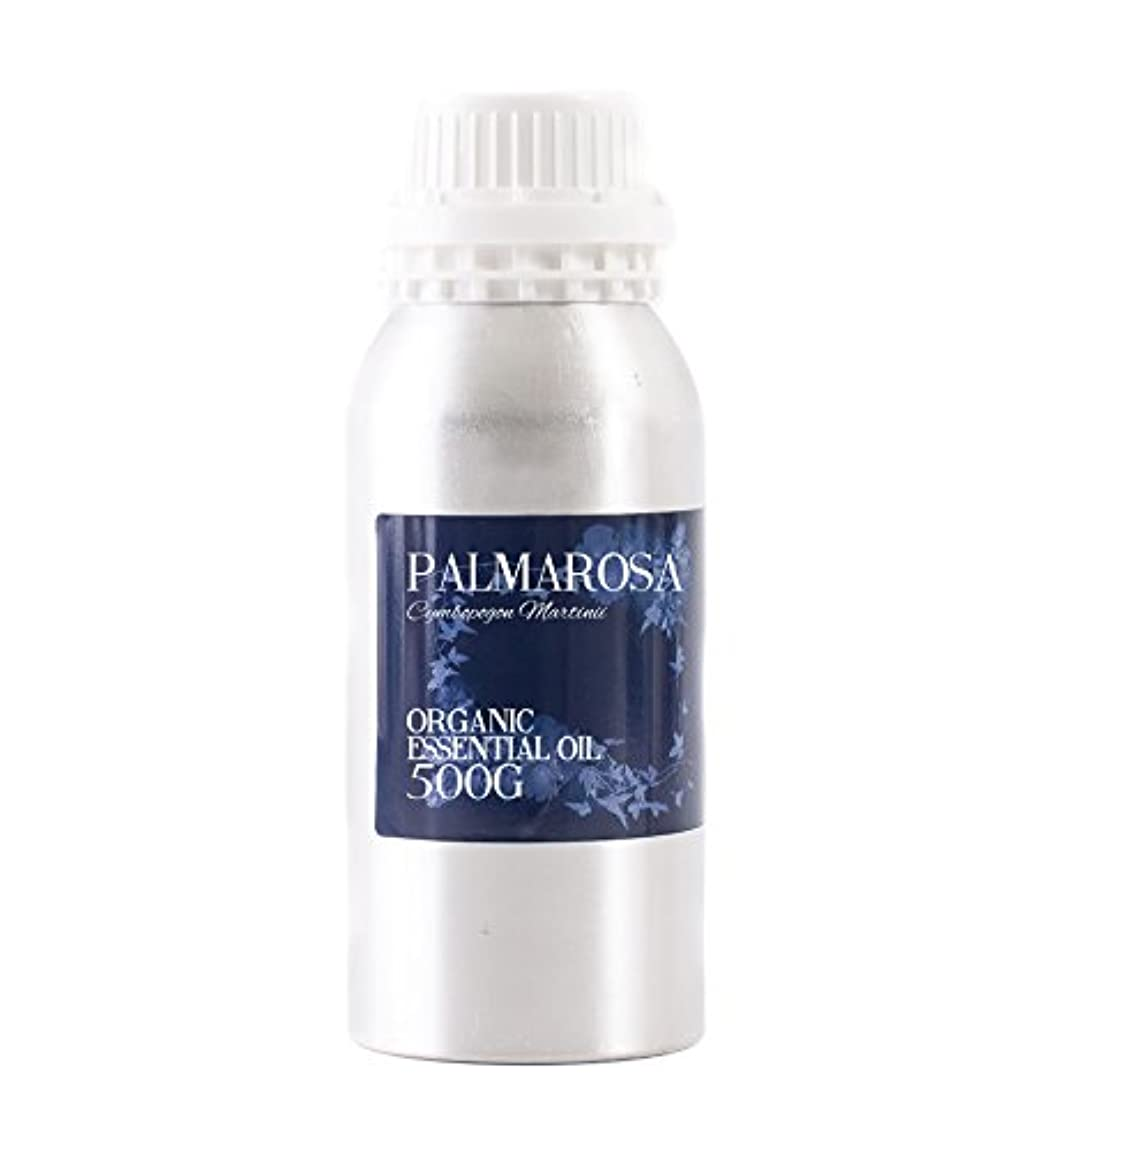 メンタル検体マイクロフォンMystic Moments | Palmarosa Organic Essential Oil - 500g - 100% Pure